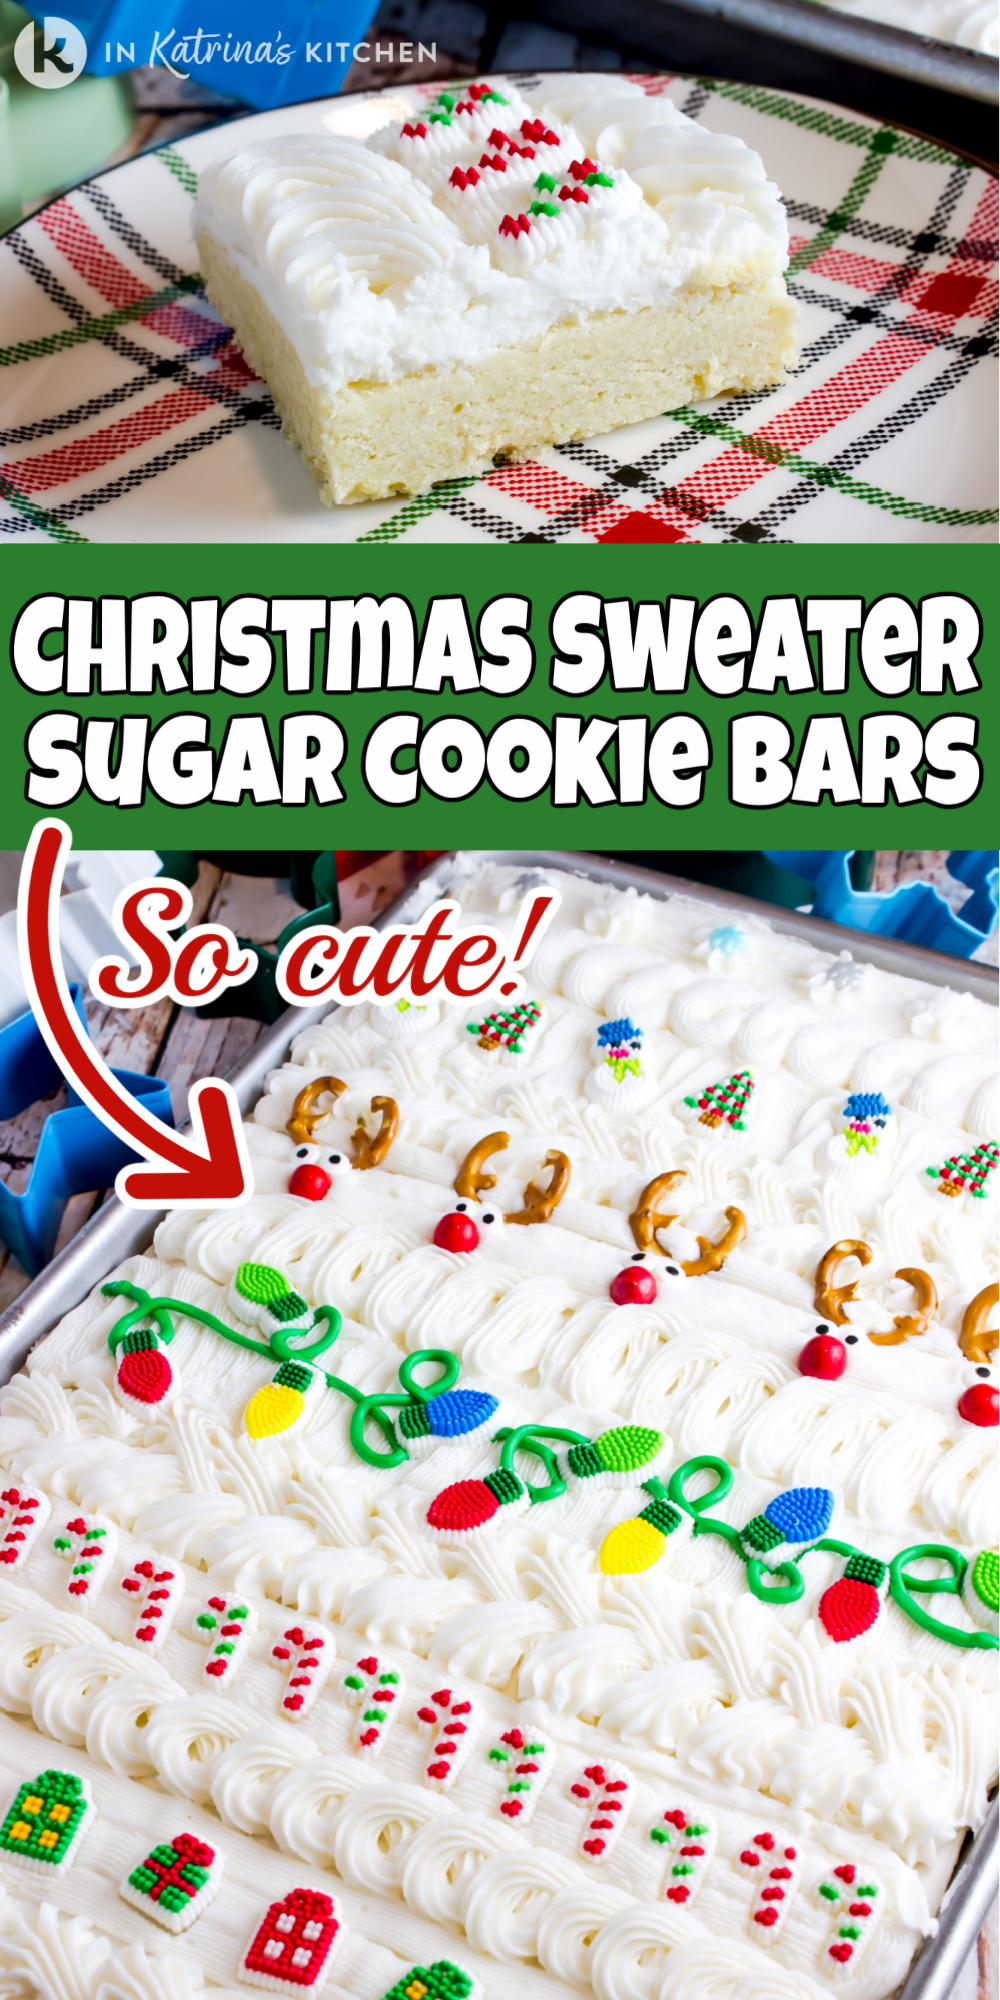 Perfectly thick and fluffy! These Ugly Christmas Sweater Sugar Cookie Bars are quick and easy! Cut out sugar cookies take too long to decorate. Serve these cookie bars at holiday parties. Print and Pin the recipe at In Katrina's Kitchen.